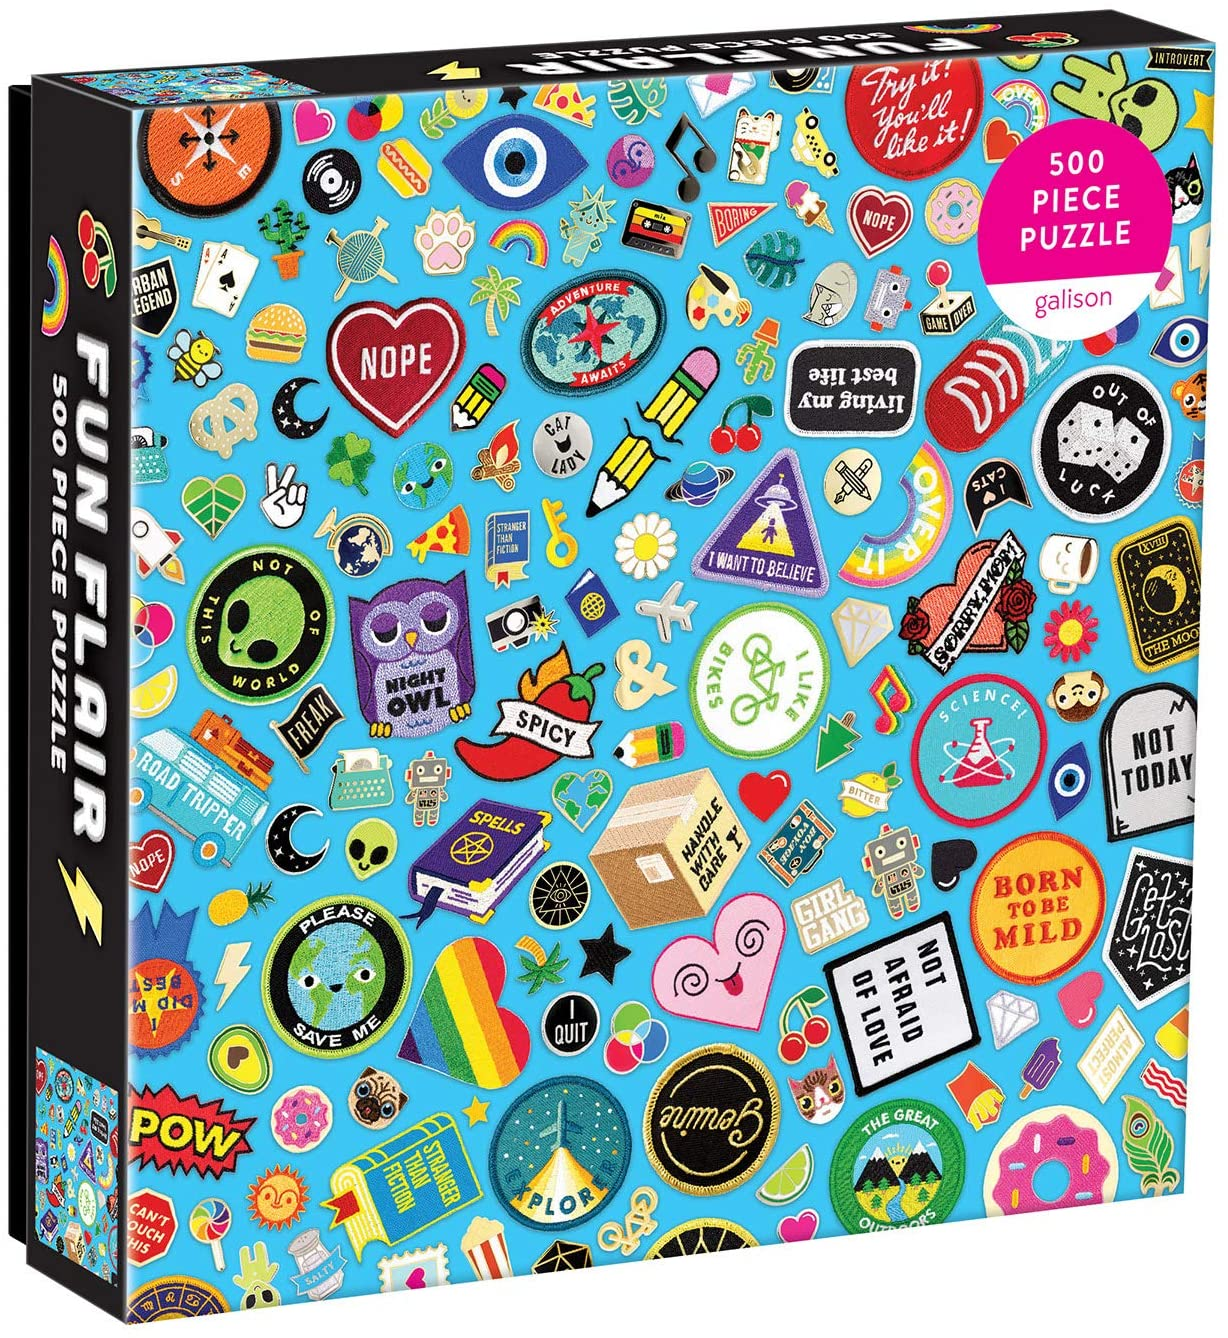 Fun Flair Puzzle 500 Piece Puzzle